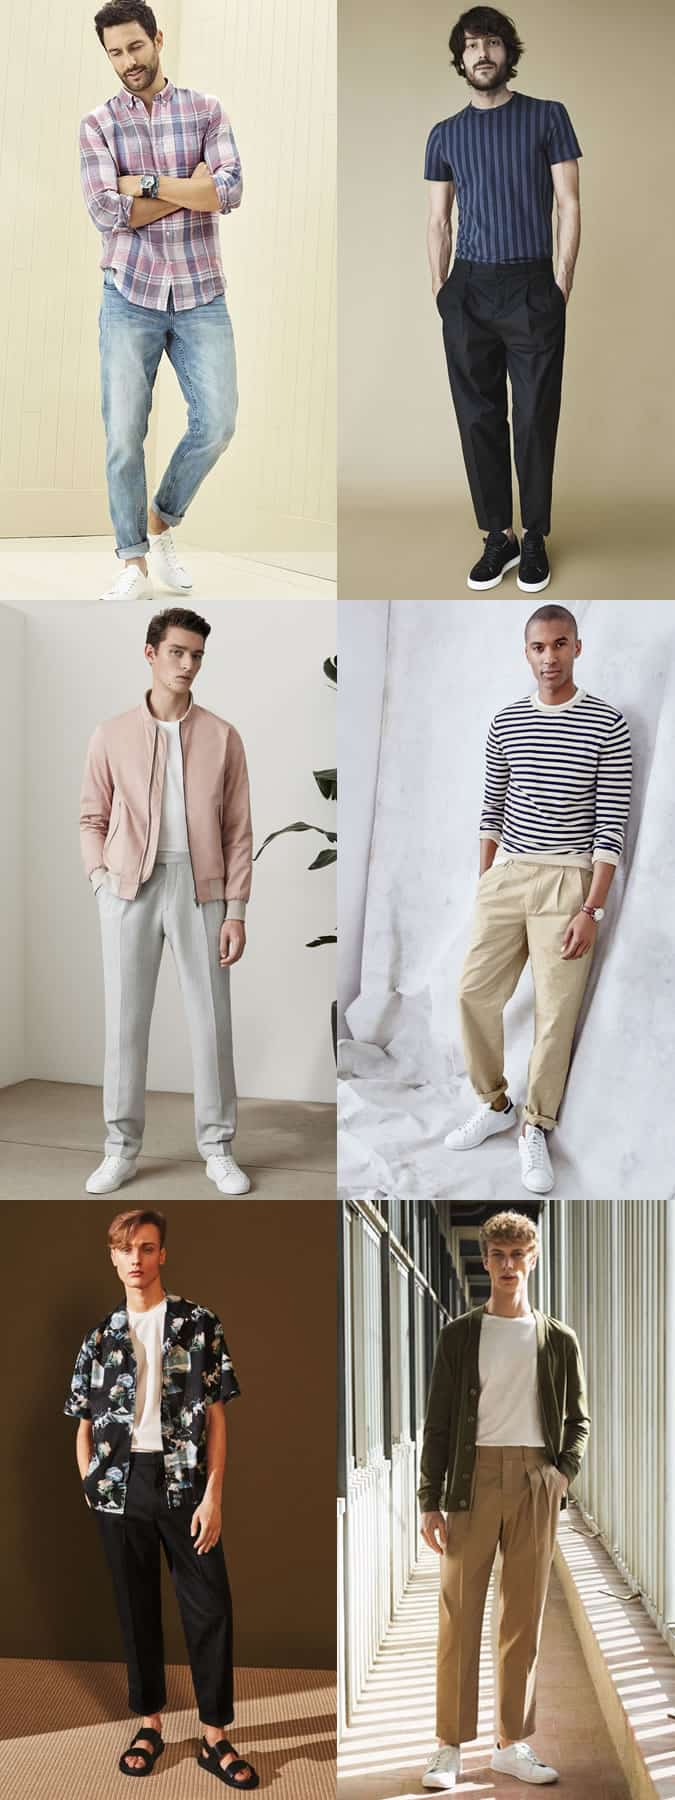 Men's Wide and Relaxed Leg Trousers/Chinos/Jeans Casual Outfit Inspiration Lookbook